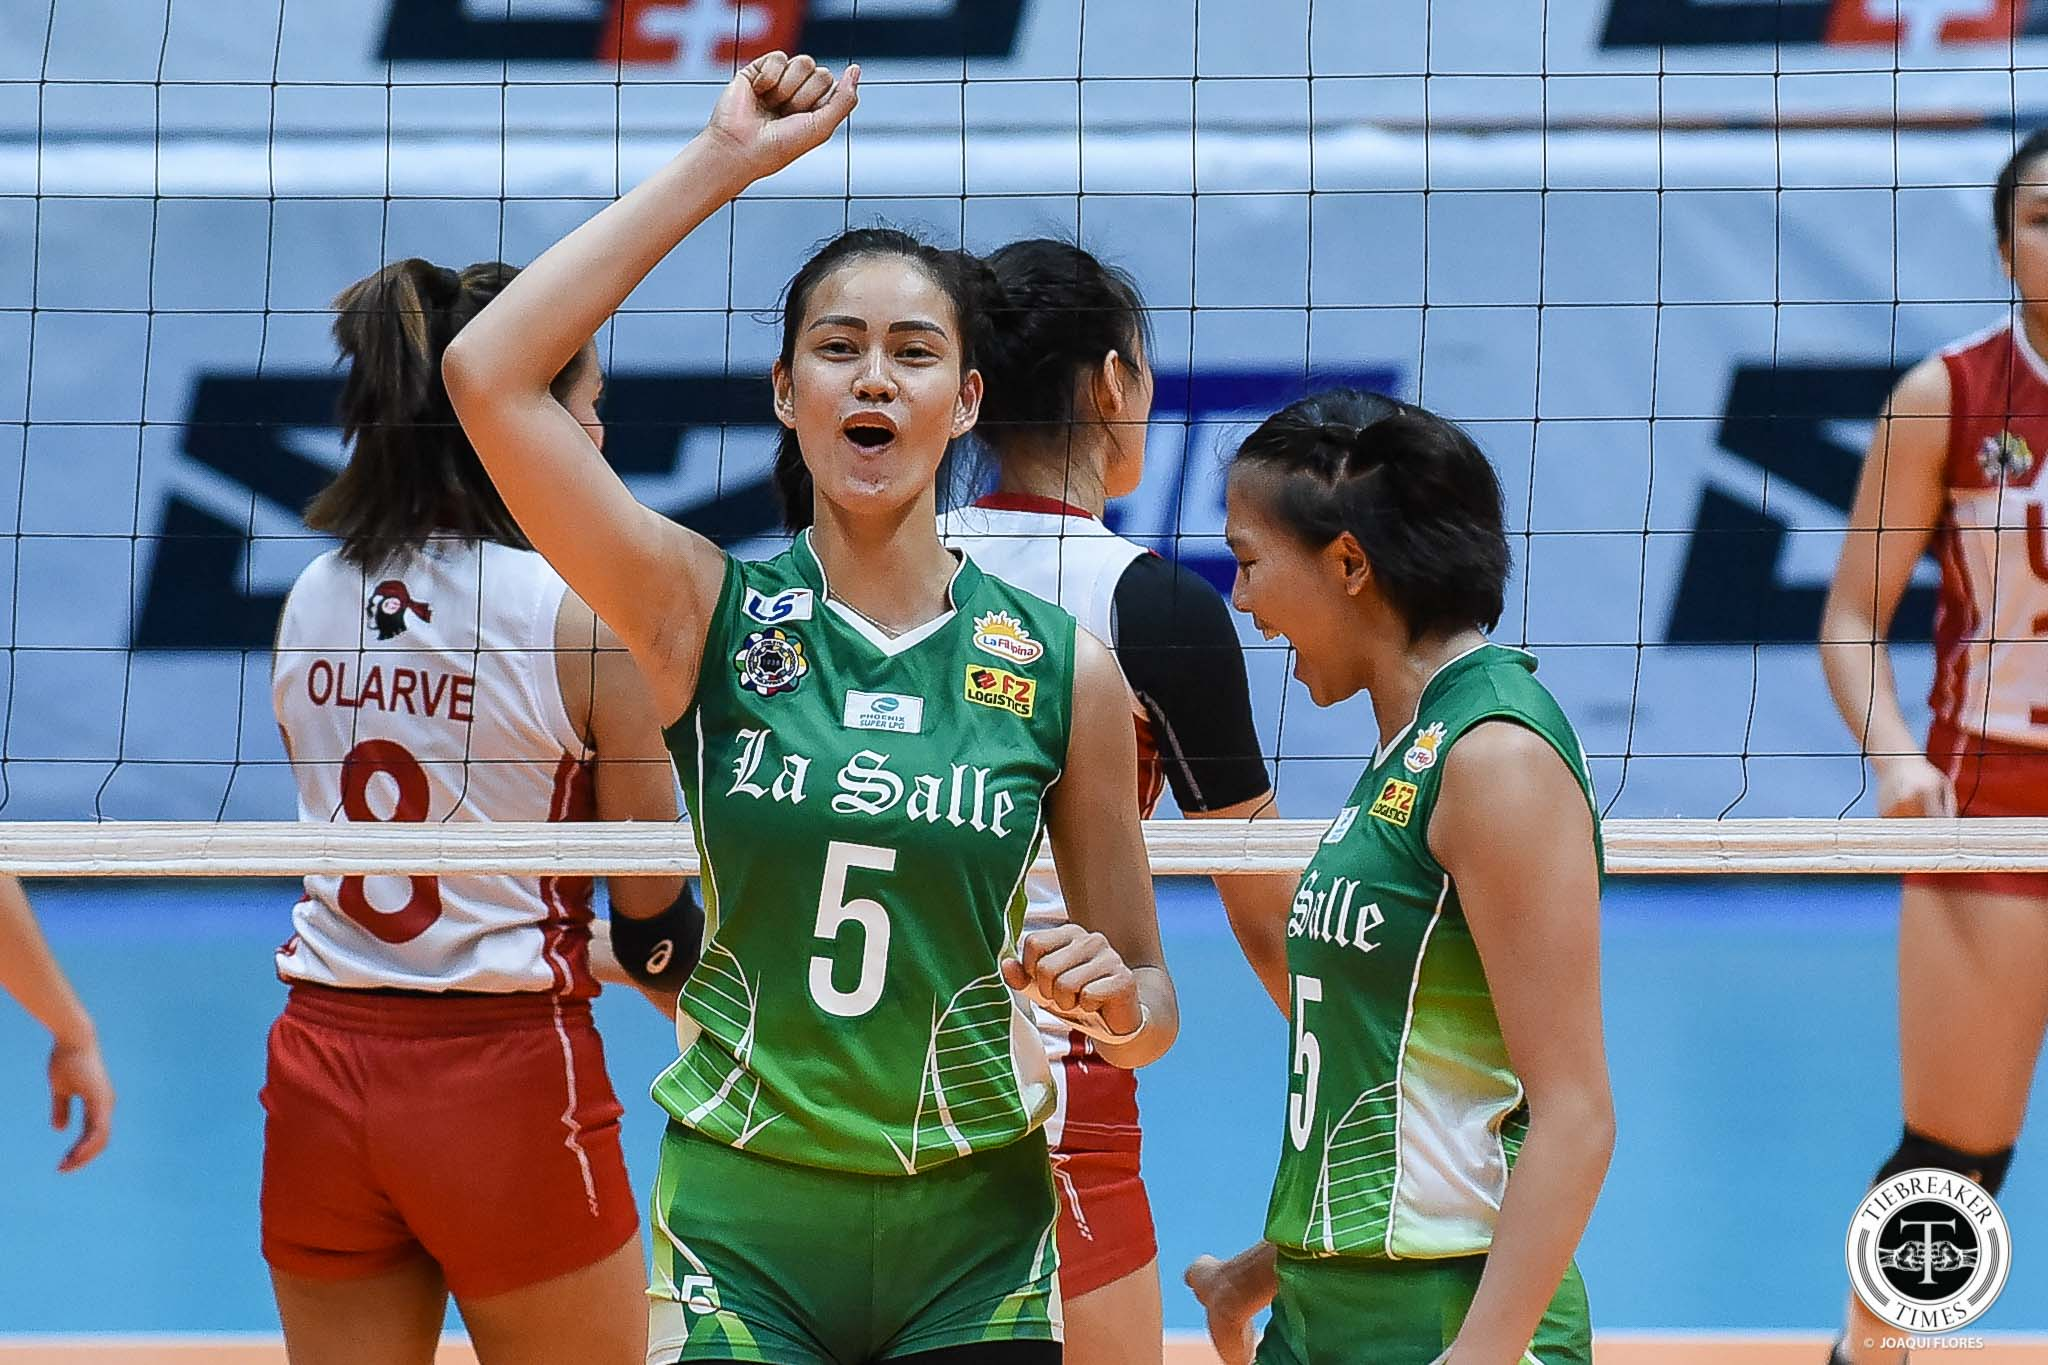 Tiebreaker Times With seeding still uncertain, La Salle Lady Spikers look to overwhelm FEU in final match DLSU News UAAP Volleyball  UAAP Season 81 Women's Volleyball UAAP Season 81 Ramil De Jesus DLSU Women's Volleyball